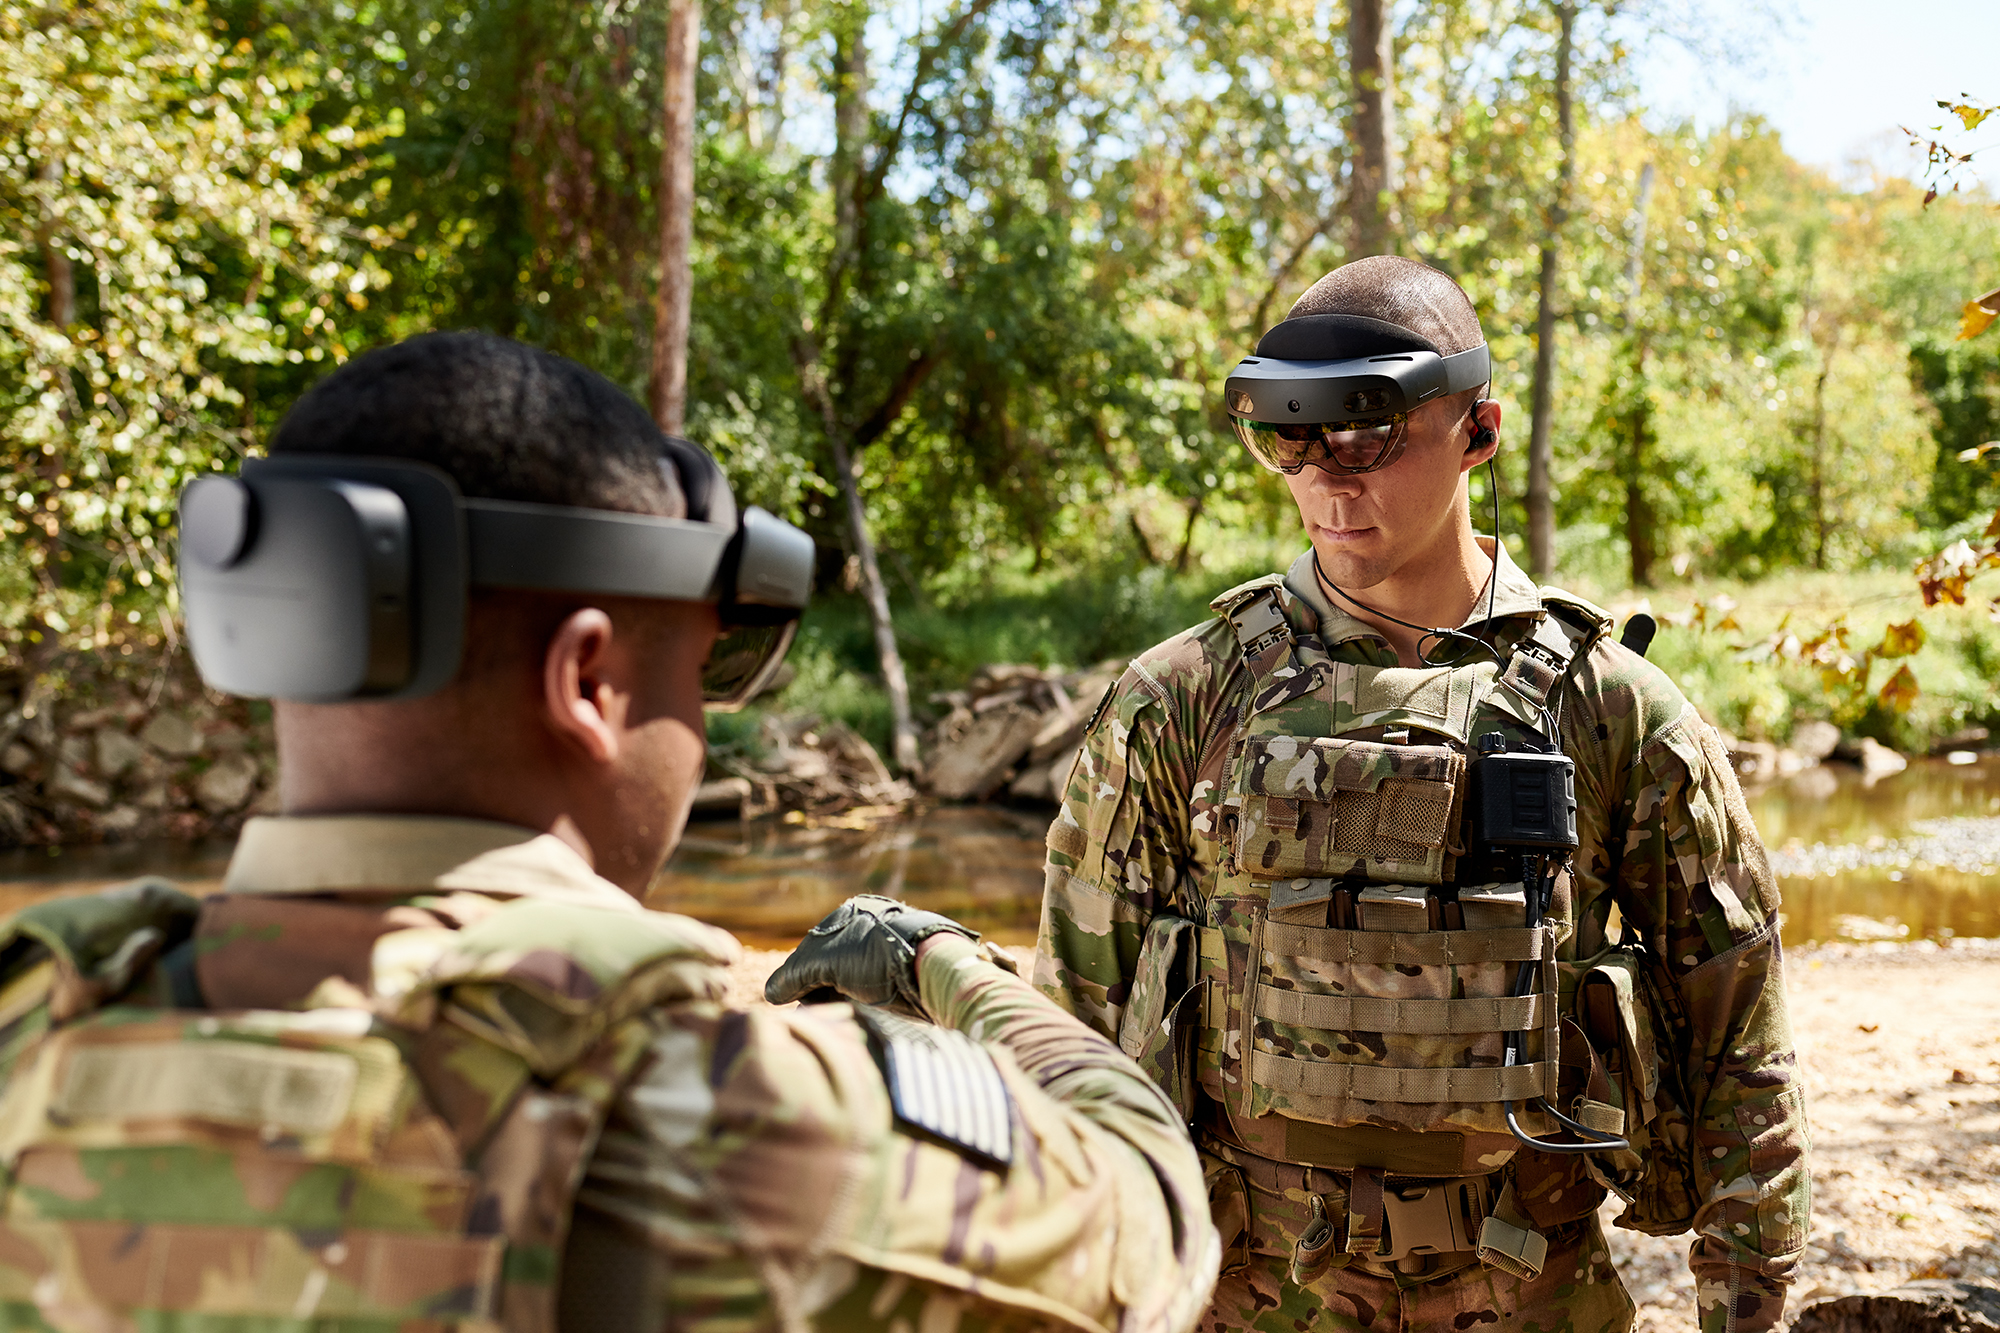 Soldiers test the Integrated Visual Augmentation System, an advanced goggle that would put mixed reality with navigation, target identification and other capabilities into troops' view. (Army)